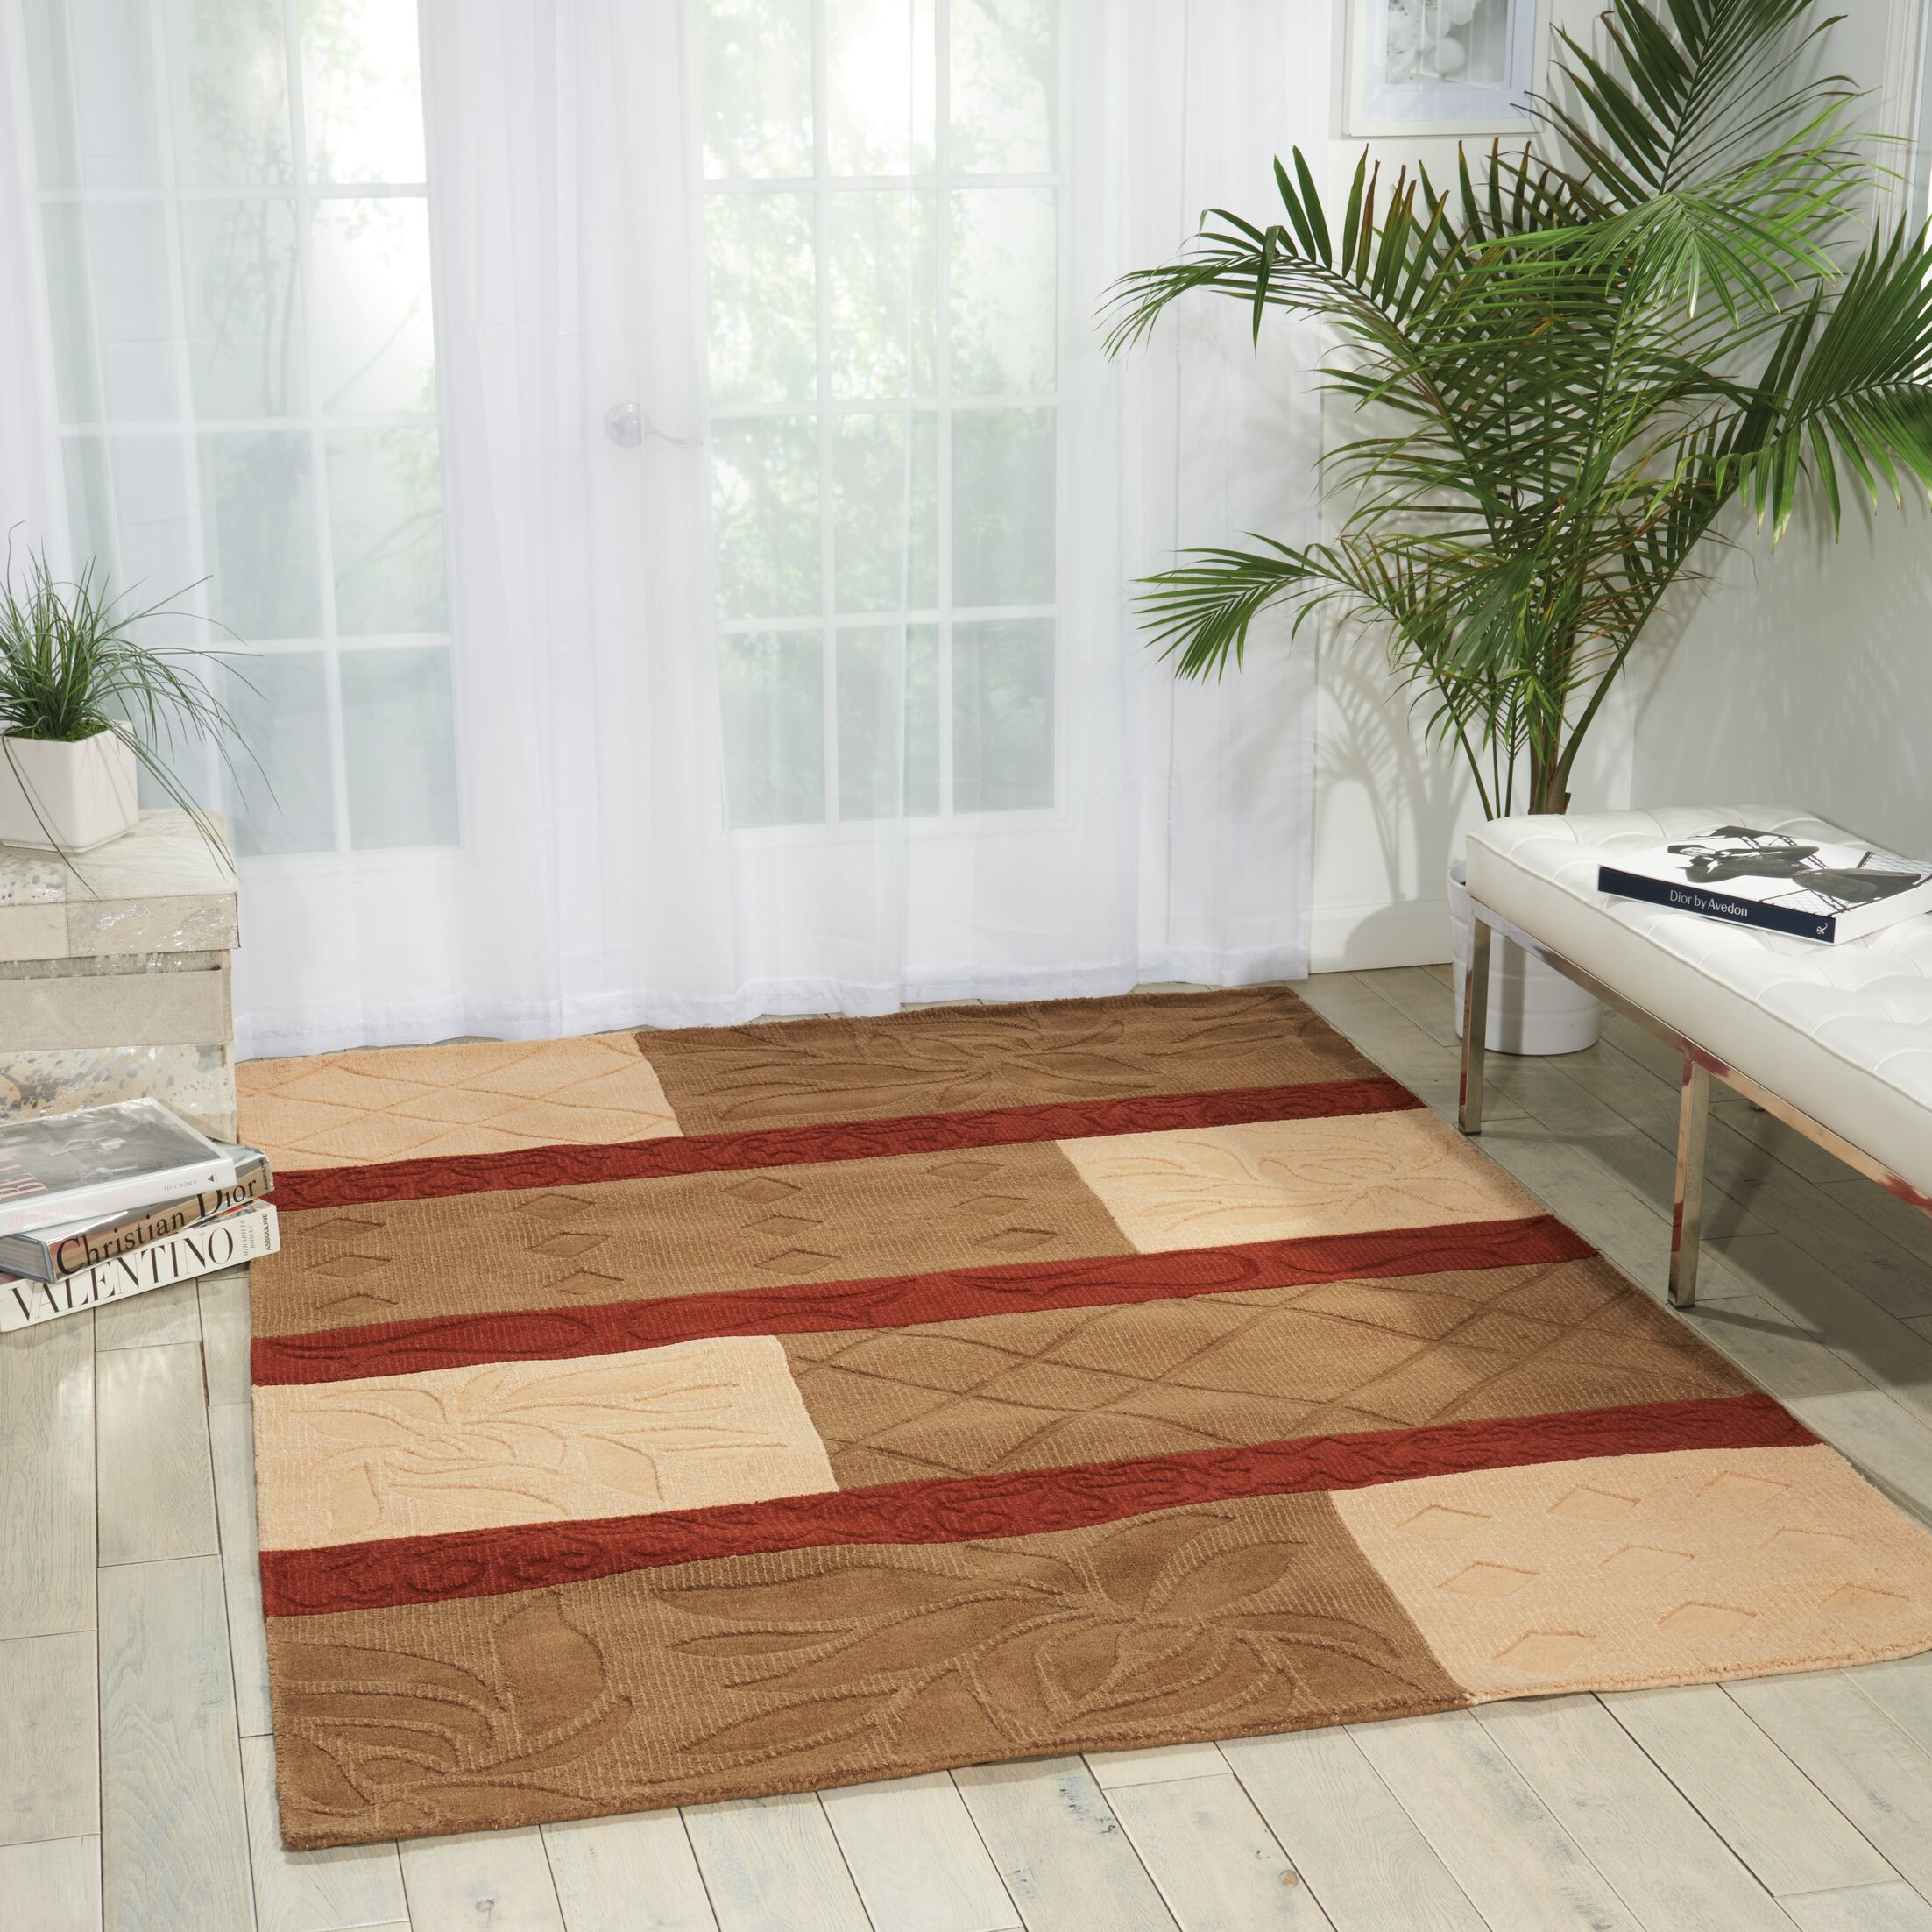 Aviston Hand-Tufted Red/Beige Area Rug Rug Size: Rectangle 5'6